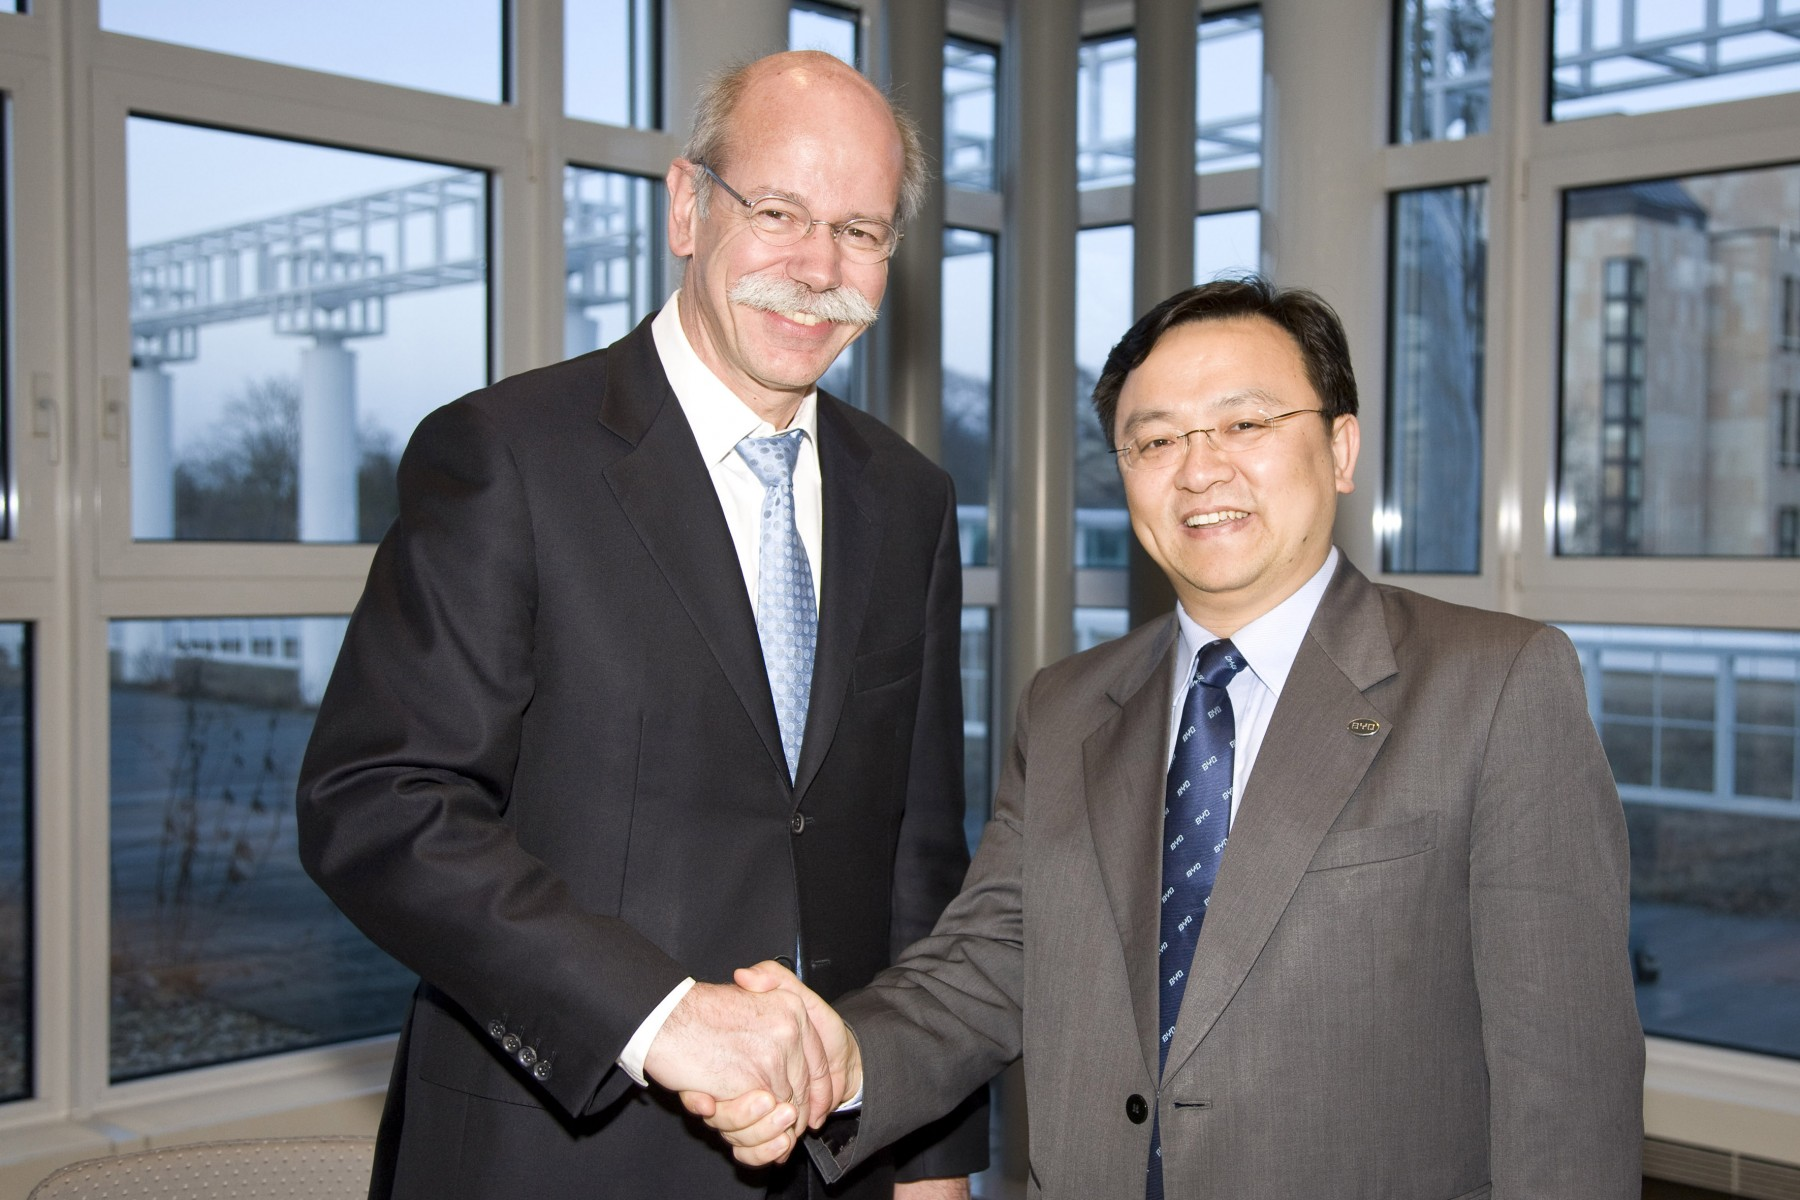 Dr. Dieter Zetsche, Chairman of the Board of Management at Daimler AG and Head of Mercedes-Benz Cars as well as Wang Chuan-fu, Chairman and President of BYD Company Limited at the signing of a Memorandum of Understanding for a technology partnership for electric vehicles in China.